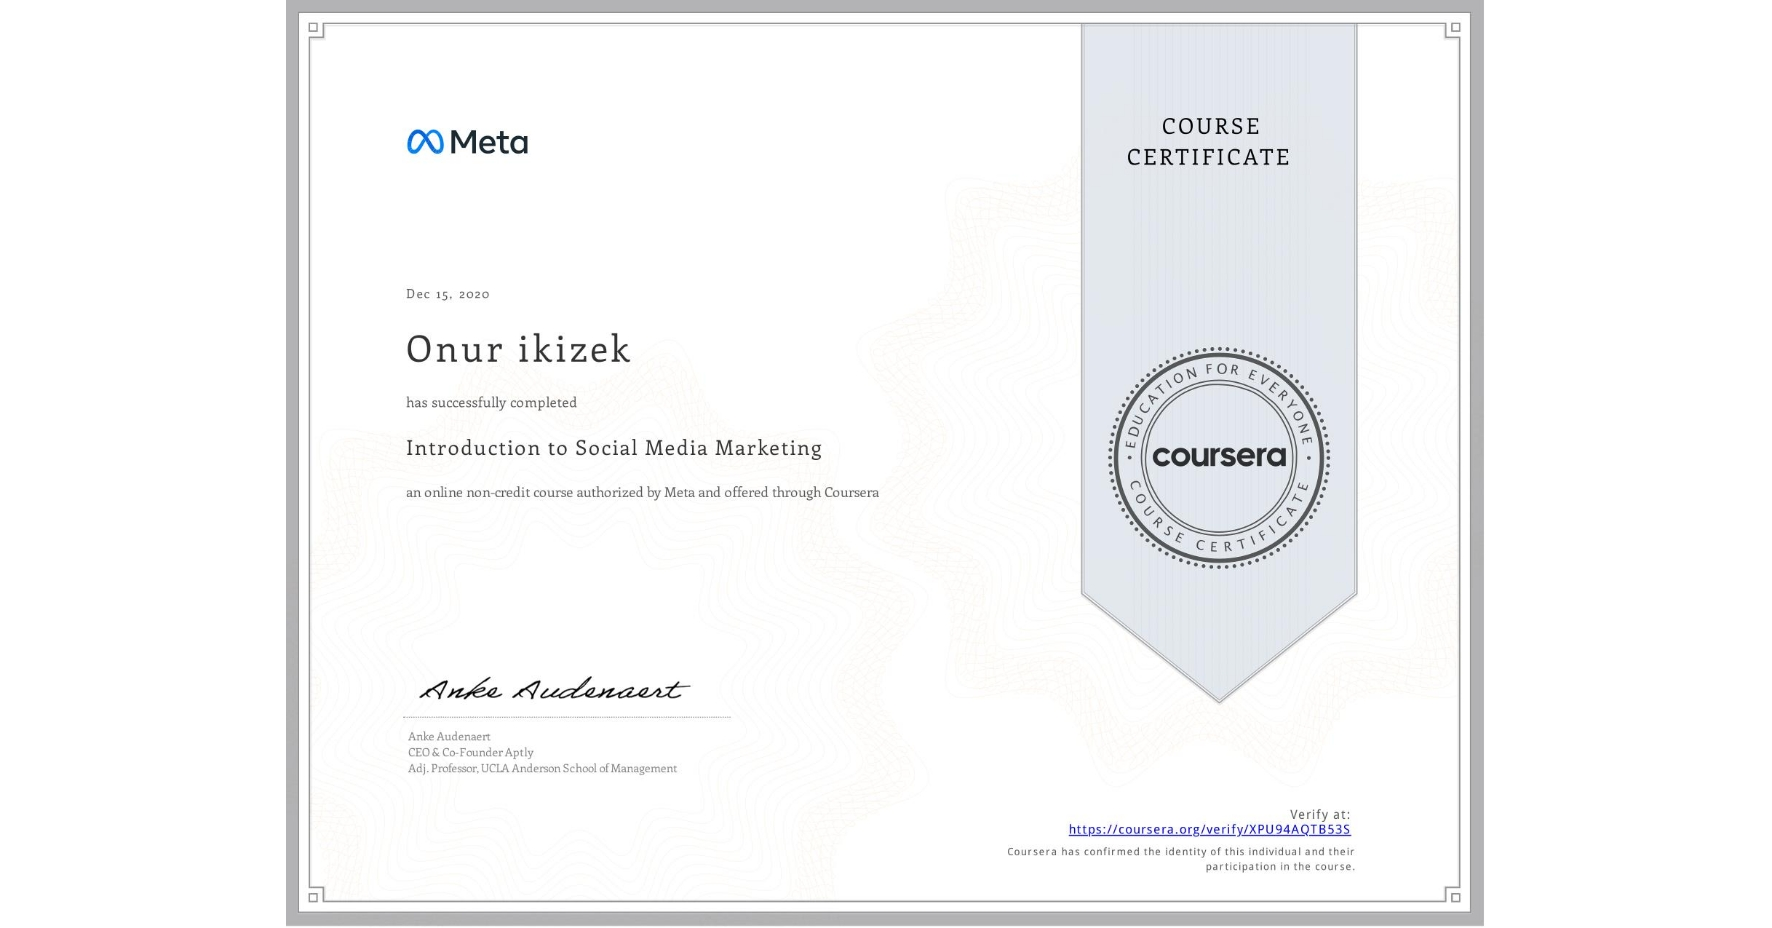 View certificate for Onur ikizek, Introduction to Social Media Marketing, an online non-credit course authorized by Facebook and offered through Coursera